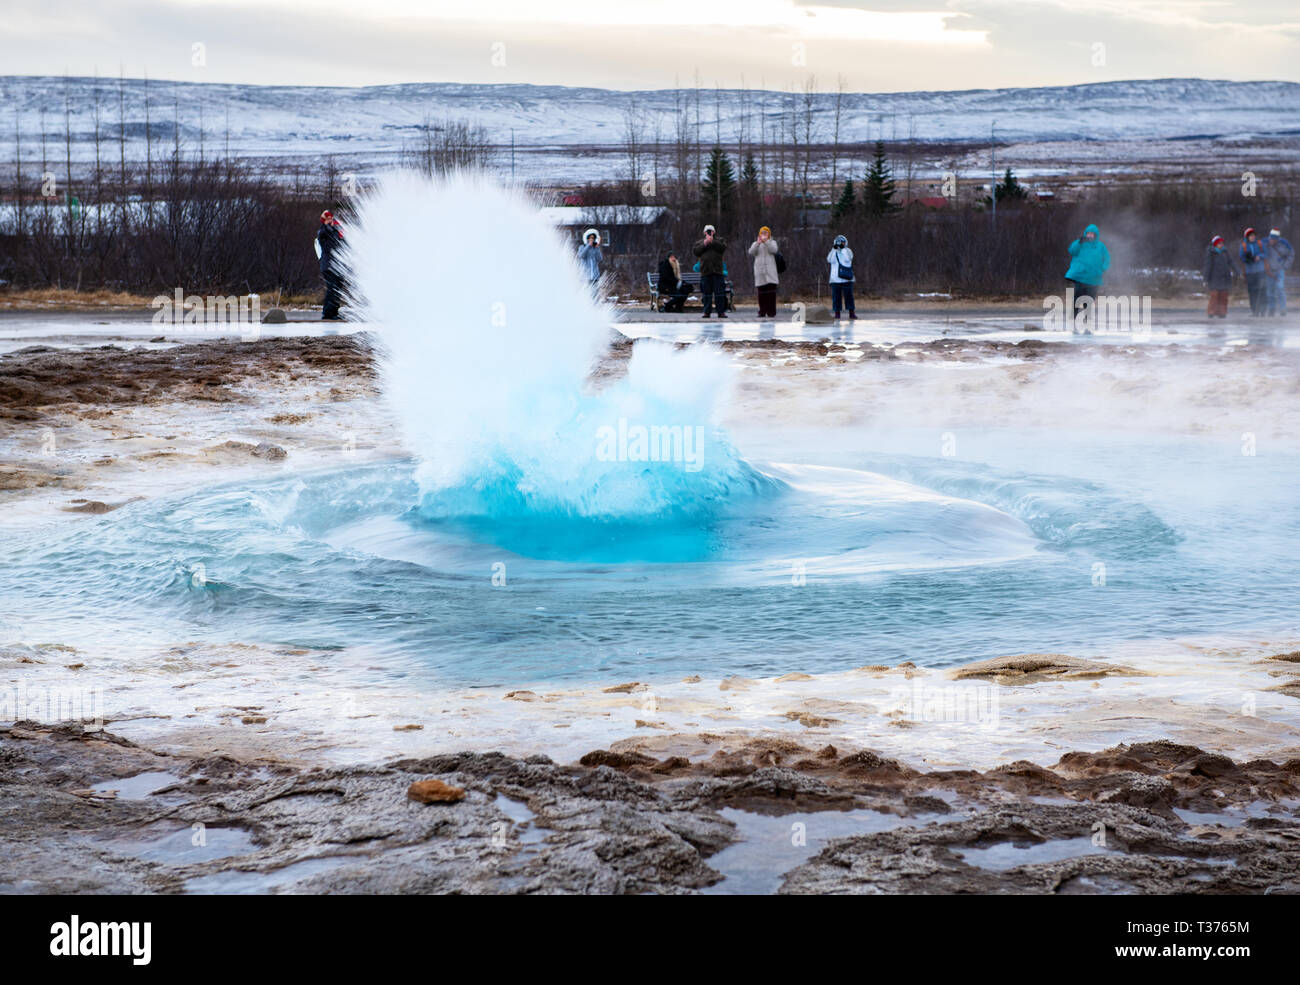 A favorite stop along the Golden Circle is the highly active Geysir Hot Spring Area with boiling mud pits, exploding geysers and the lively Strokkur w - Stock Image